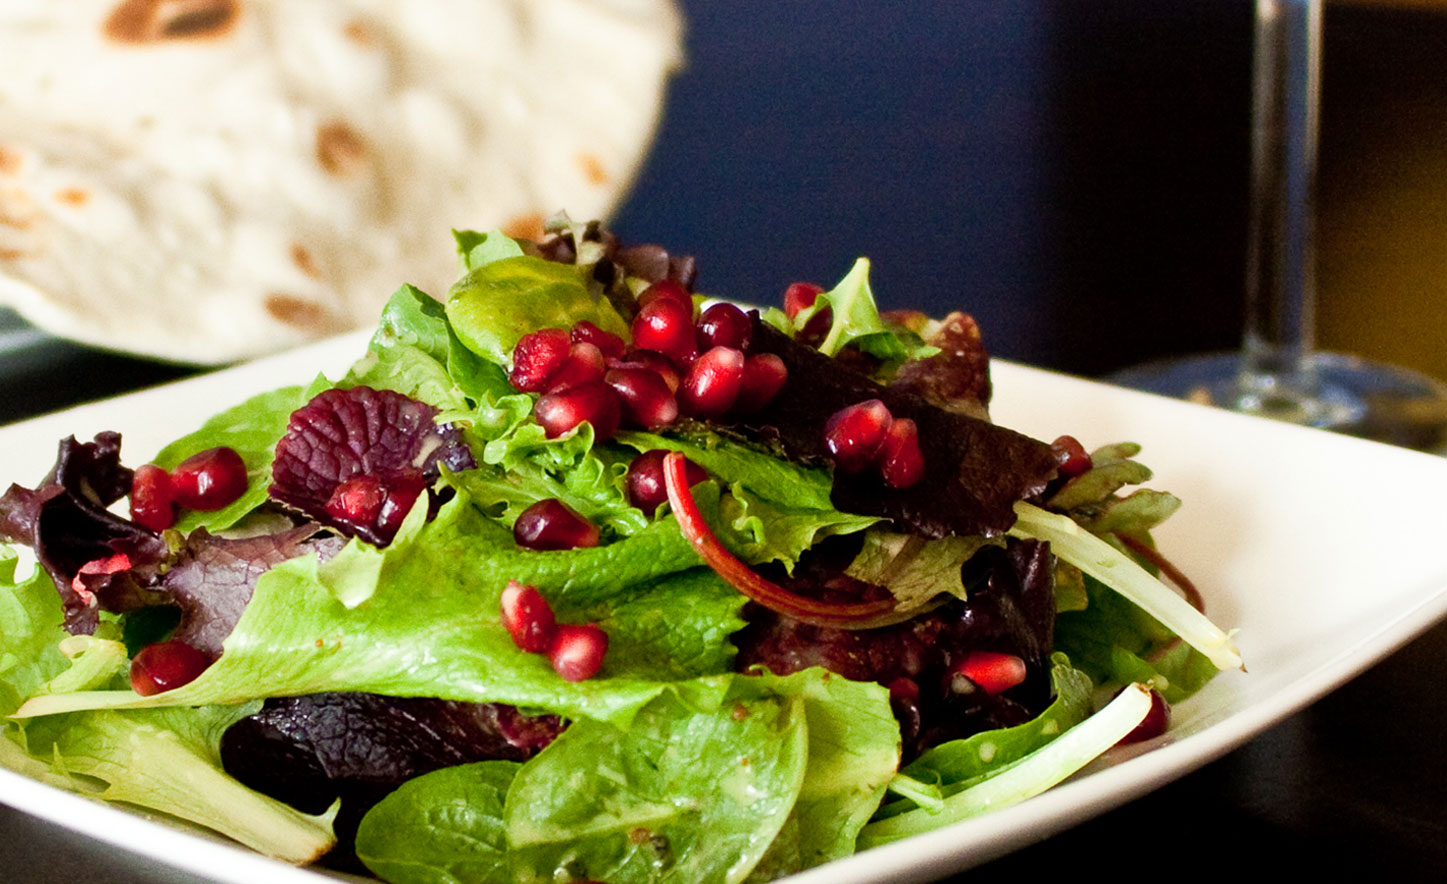 Mixed-Greens-with-Pomegranate-Seeds-vegetarian-food-Santa-Cruz1